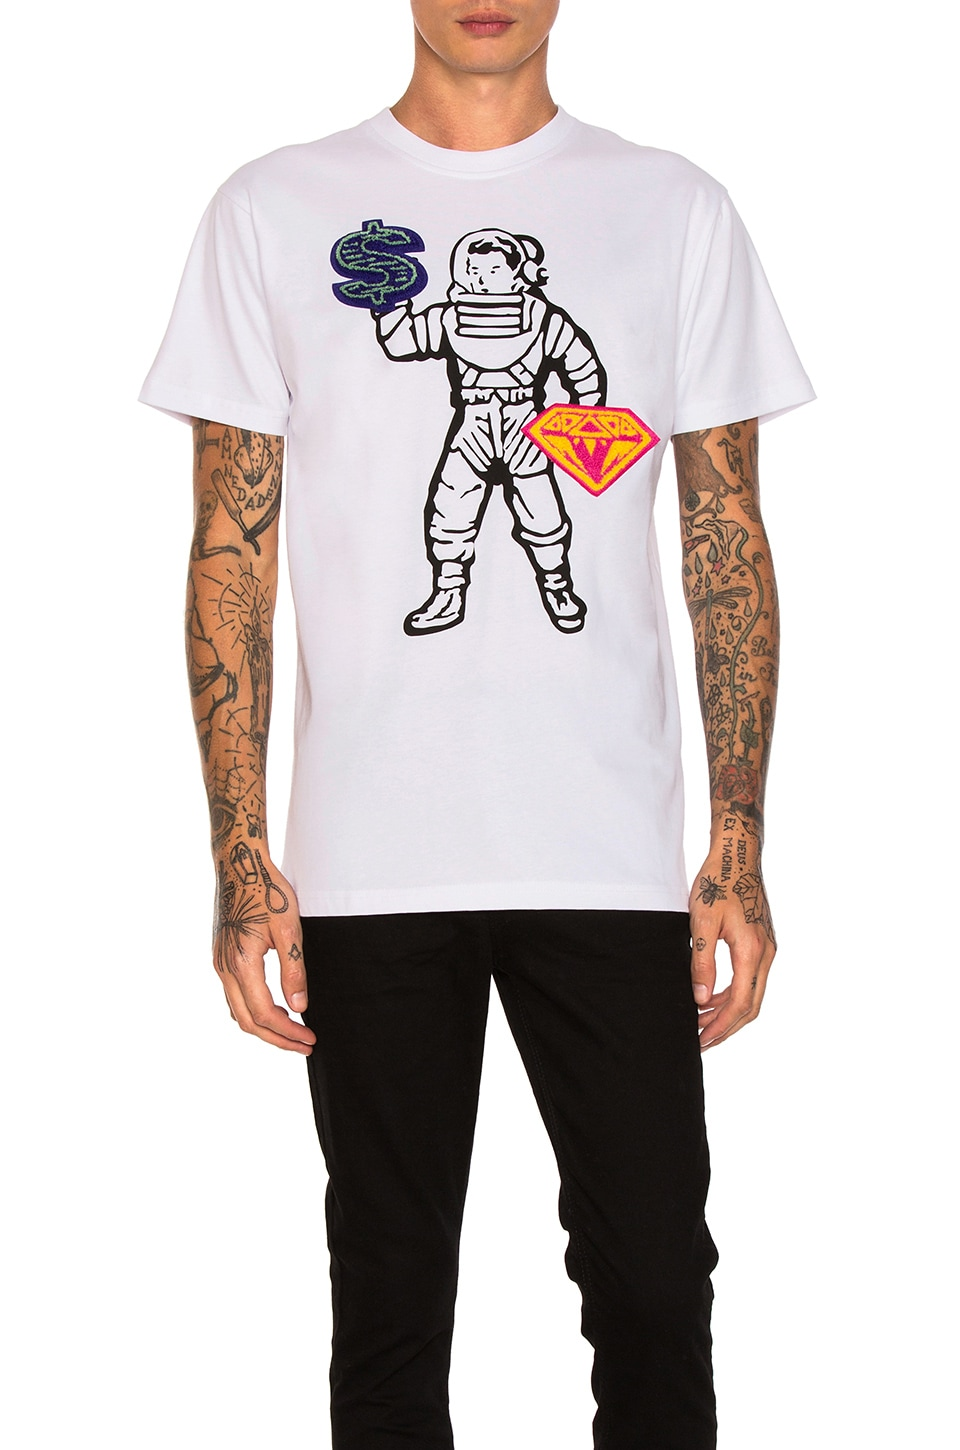 Sign Language Tee by Billionaire Boys Club